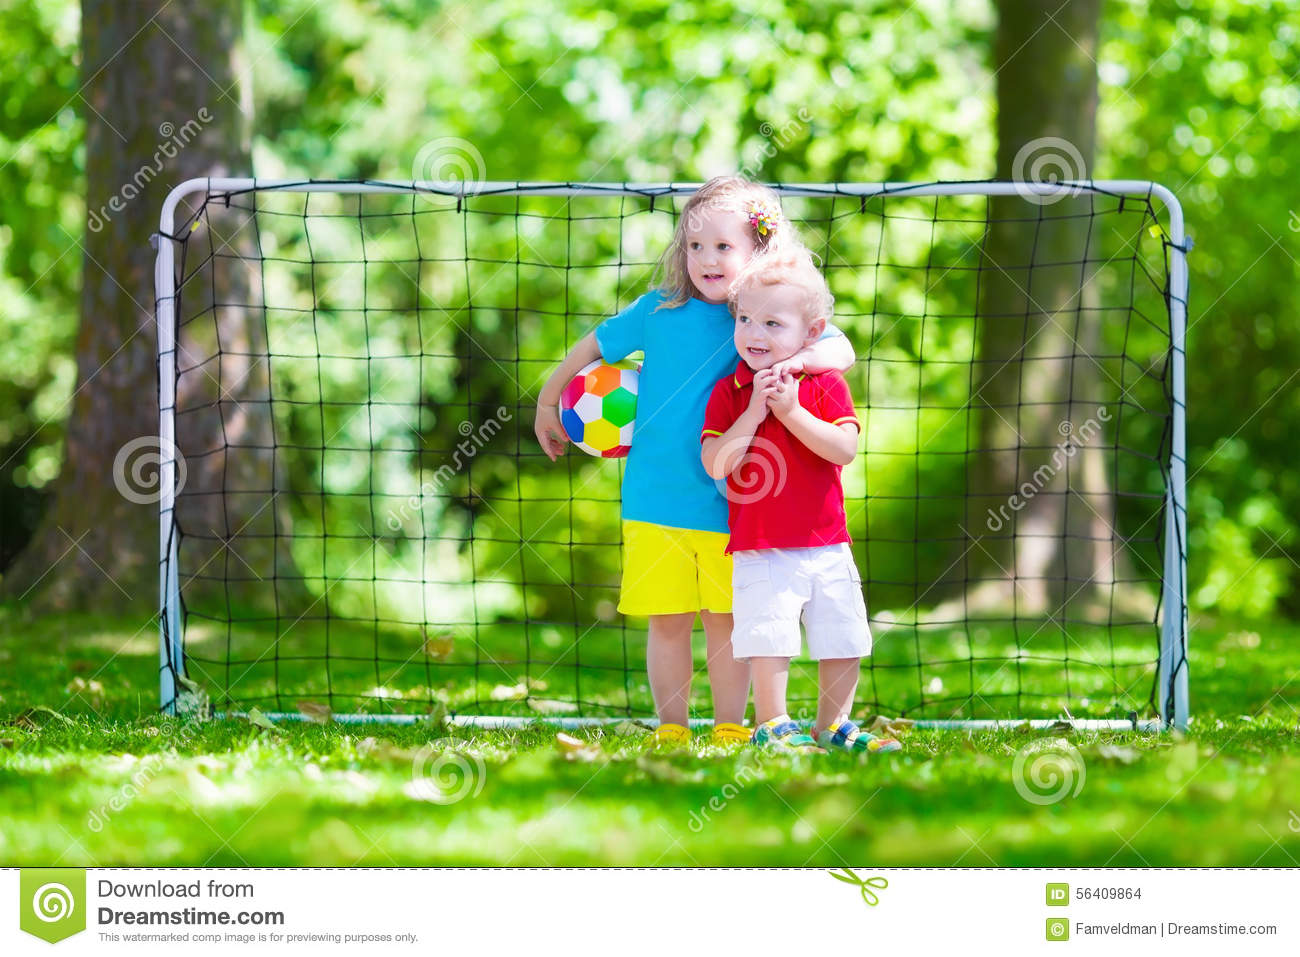 Children Playing Football Outdoors Stock Photo - Image ...